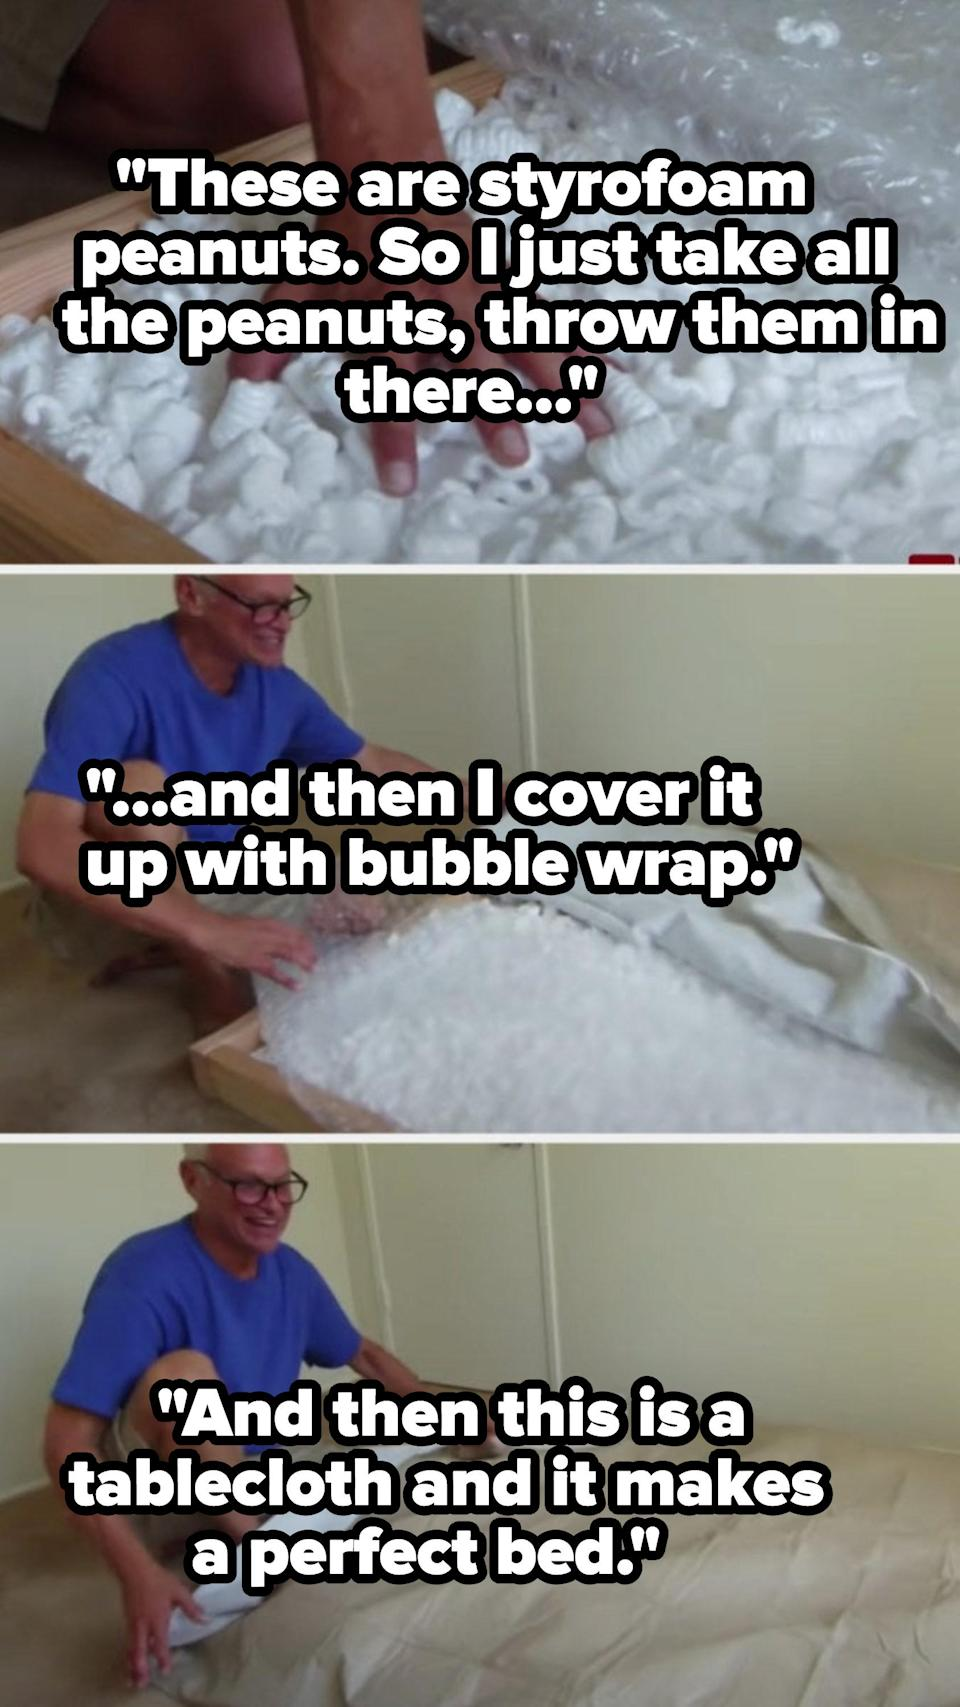 A man using styrofoam, bubble wrap, and tablecloth to make a bed